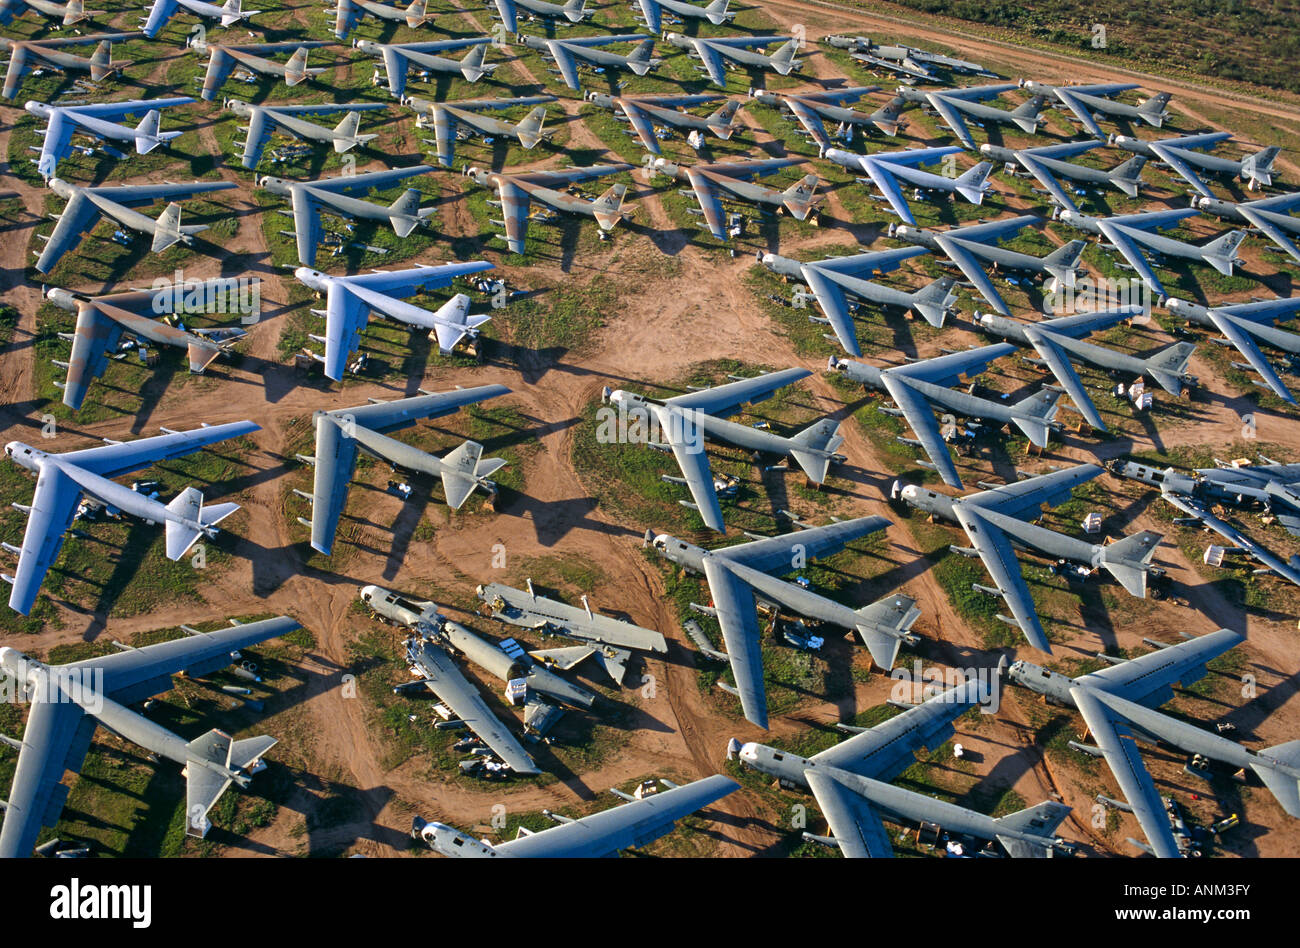 B-52 Cold War bombers of the US Air Force lie abandoned at Davis Monthan aircraft graveyard awaiting recycling for - Stock Image